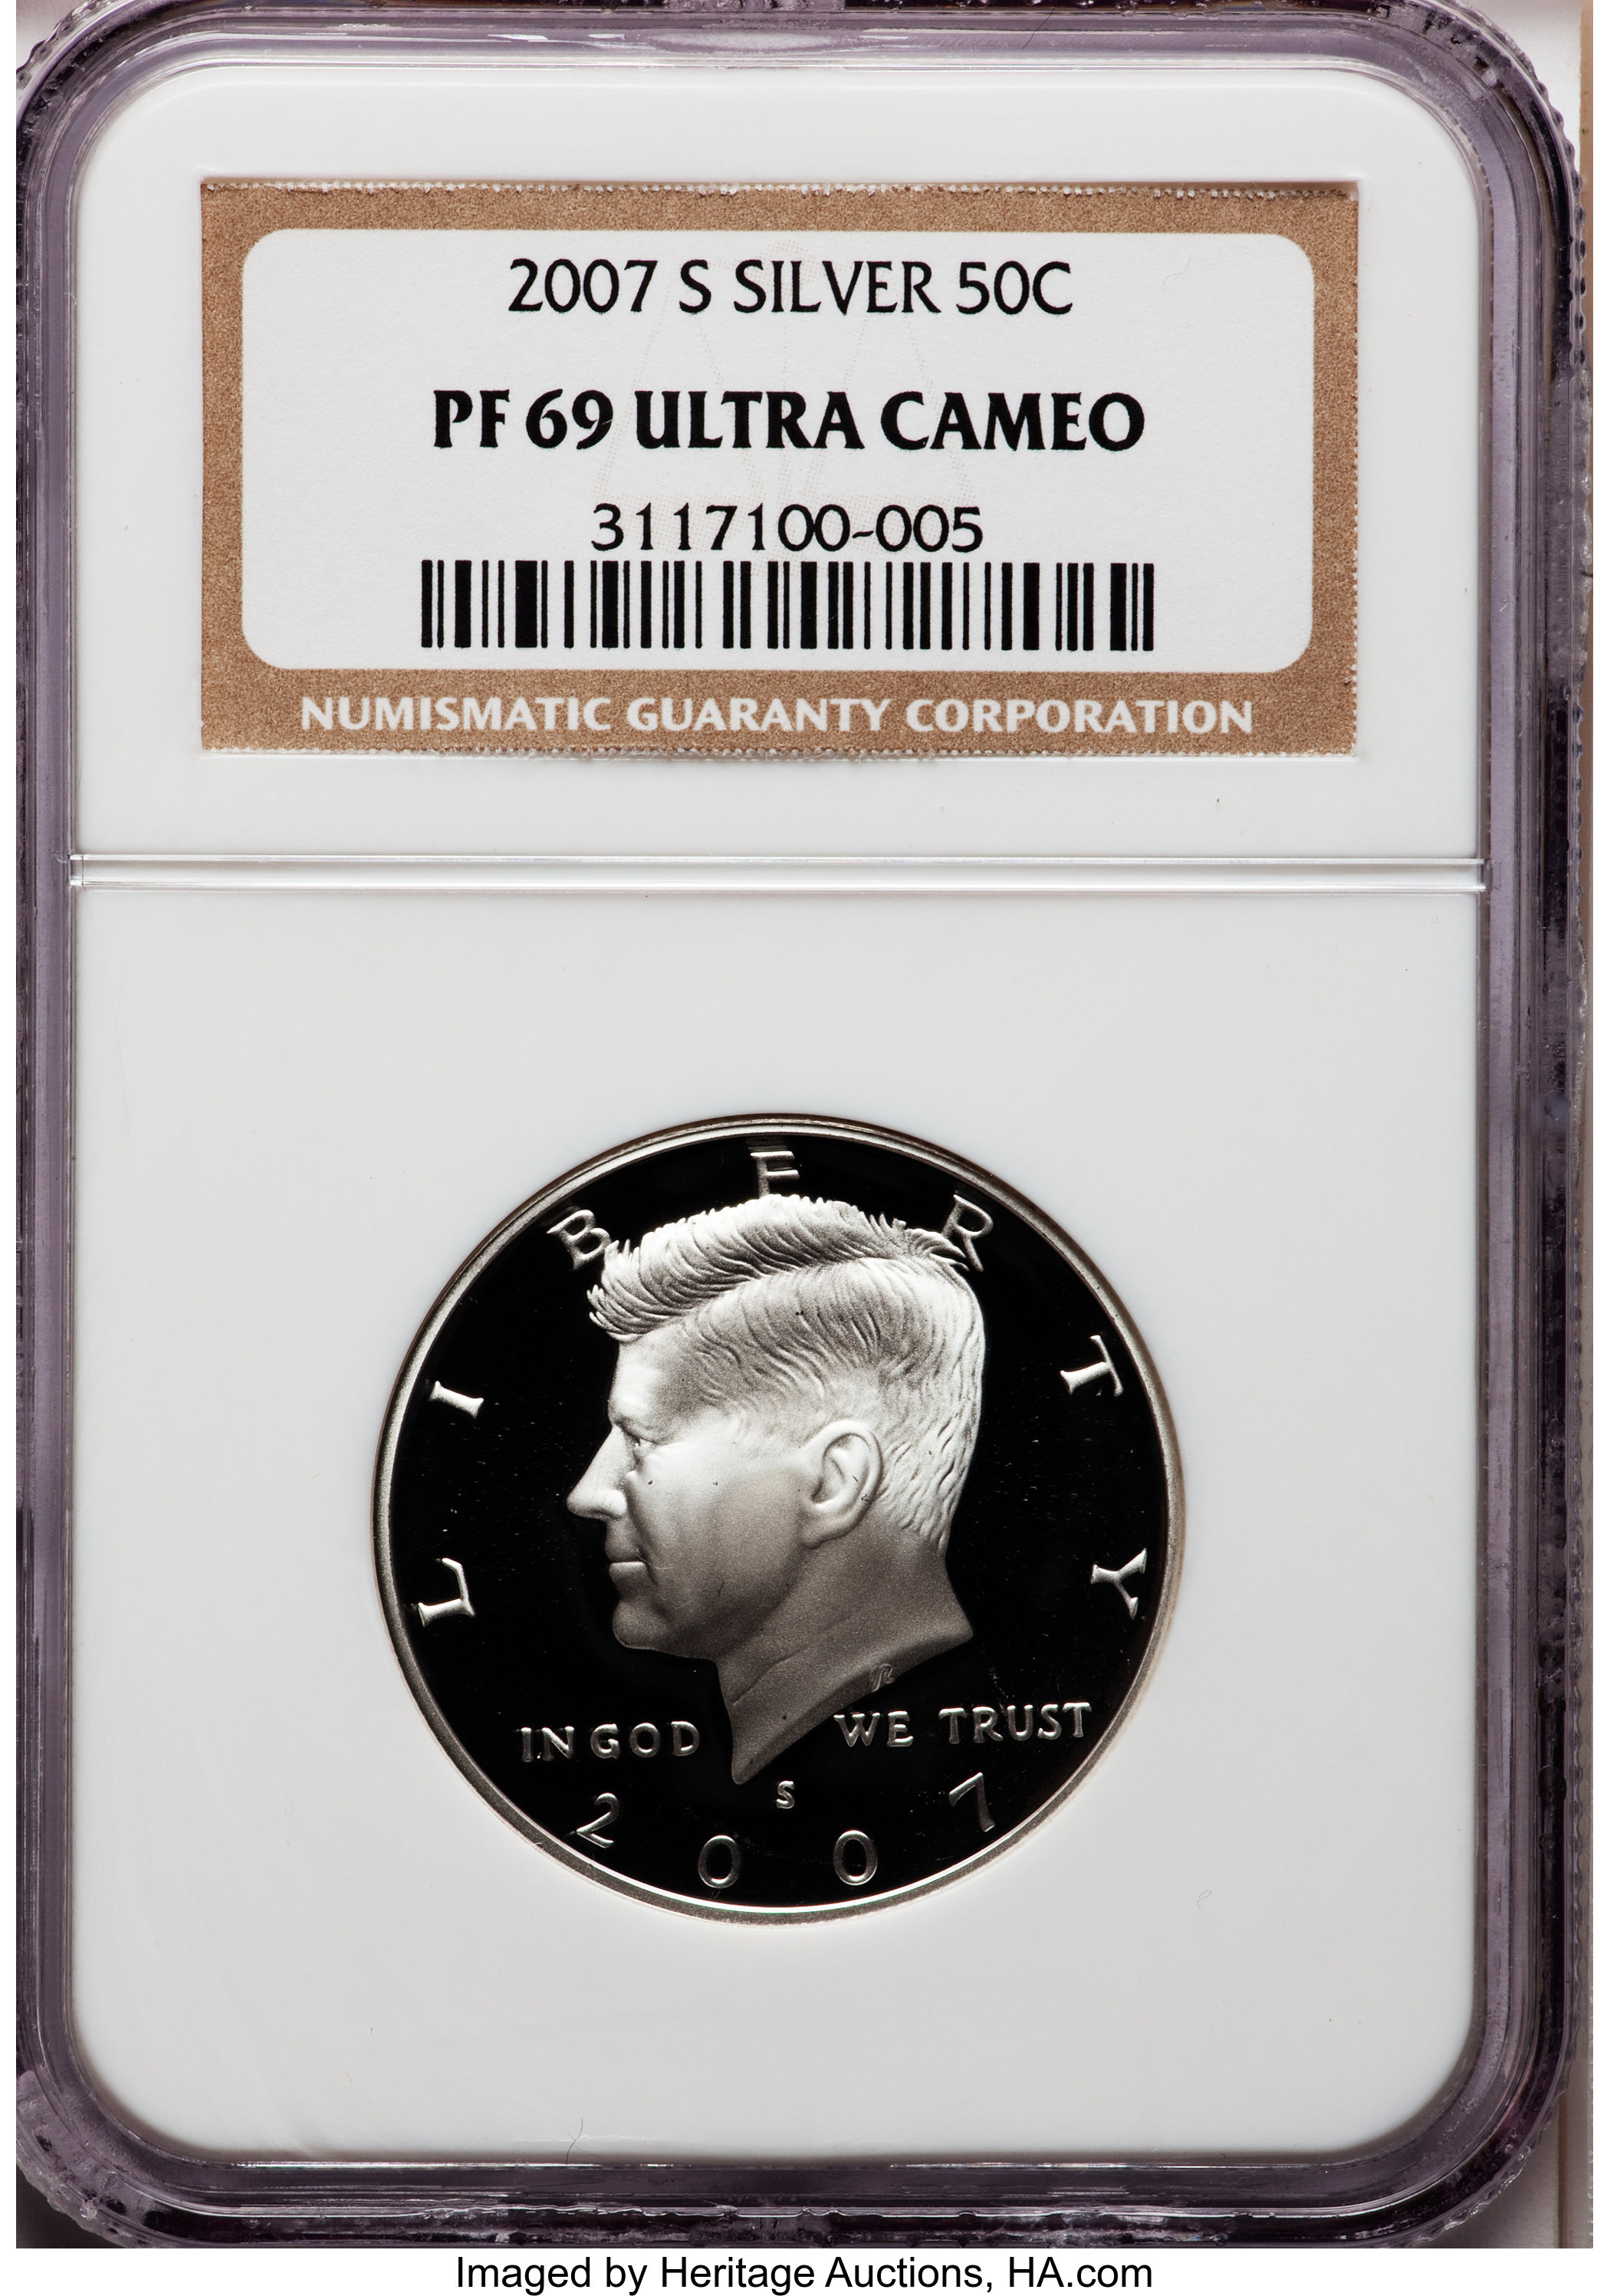 2007-S Silver Kennedy Half Dollar NGC PF-69 Ultra Cameo 170790